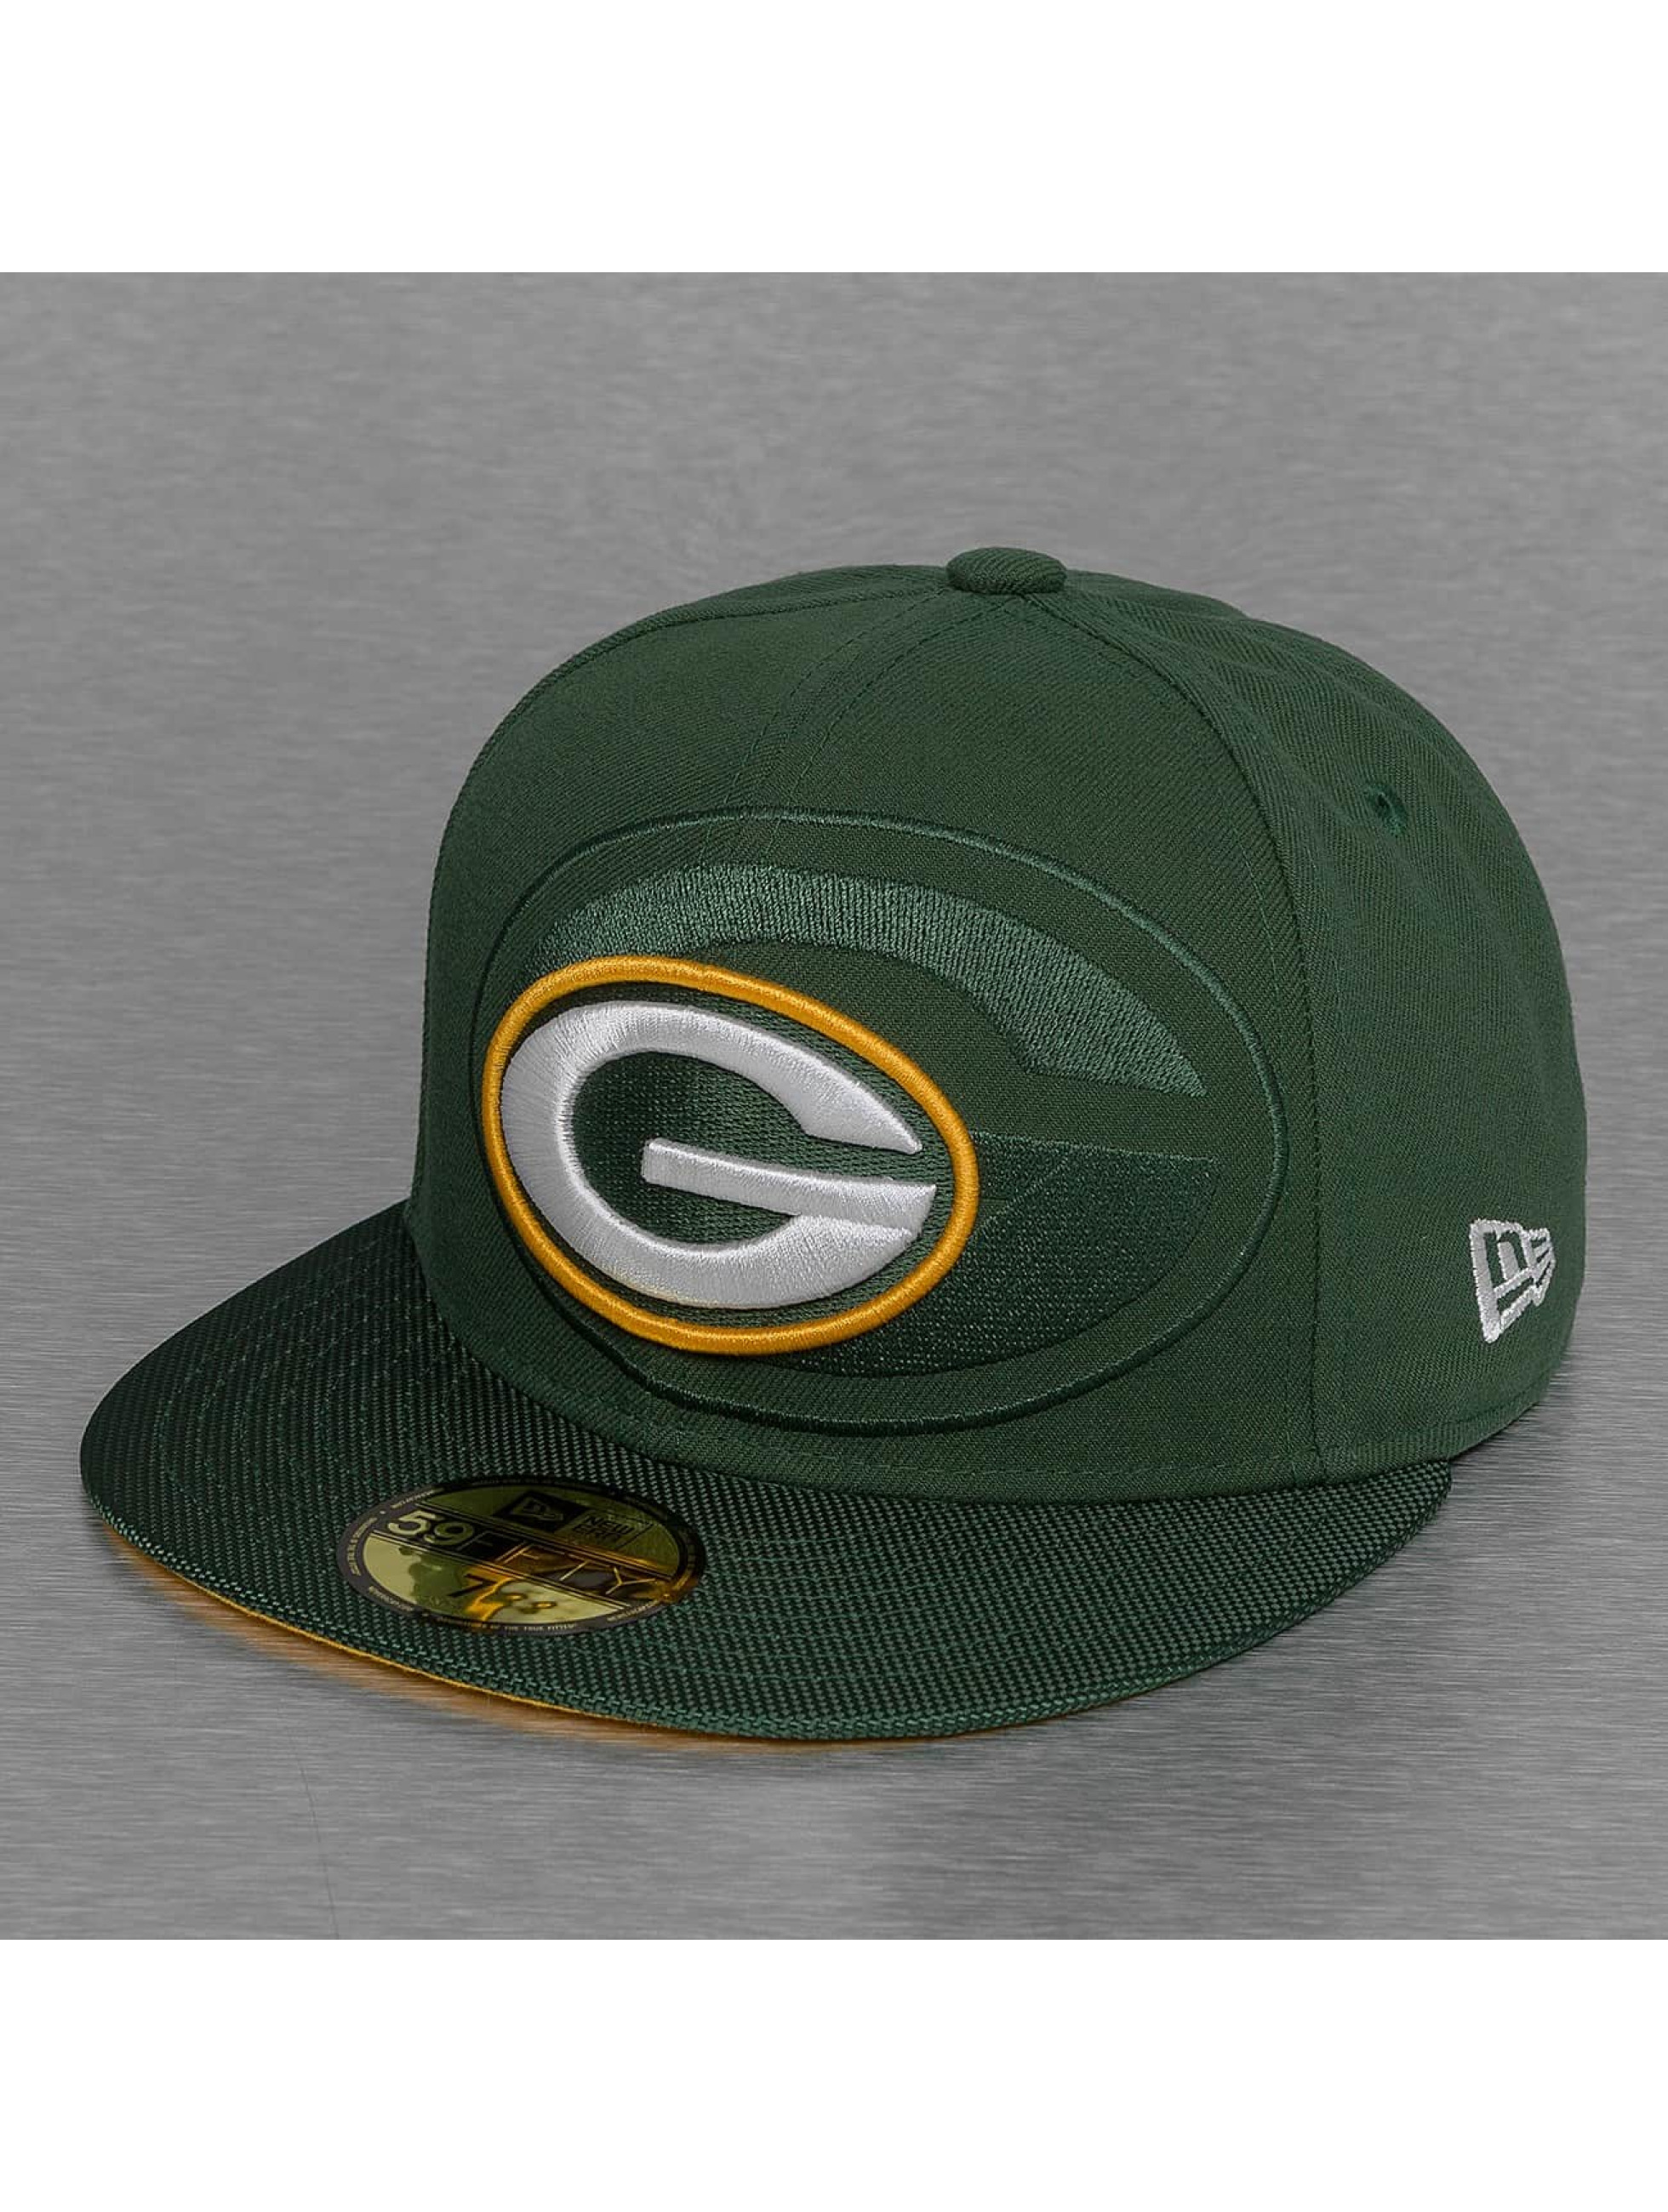 New Era Fitted Cap NFL Green Bay Packers Sideline green